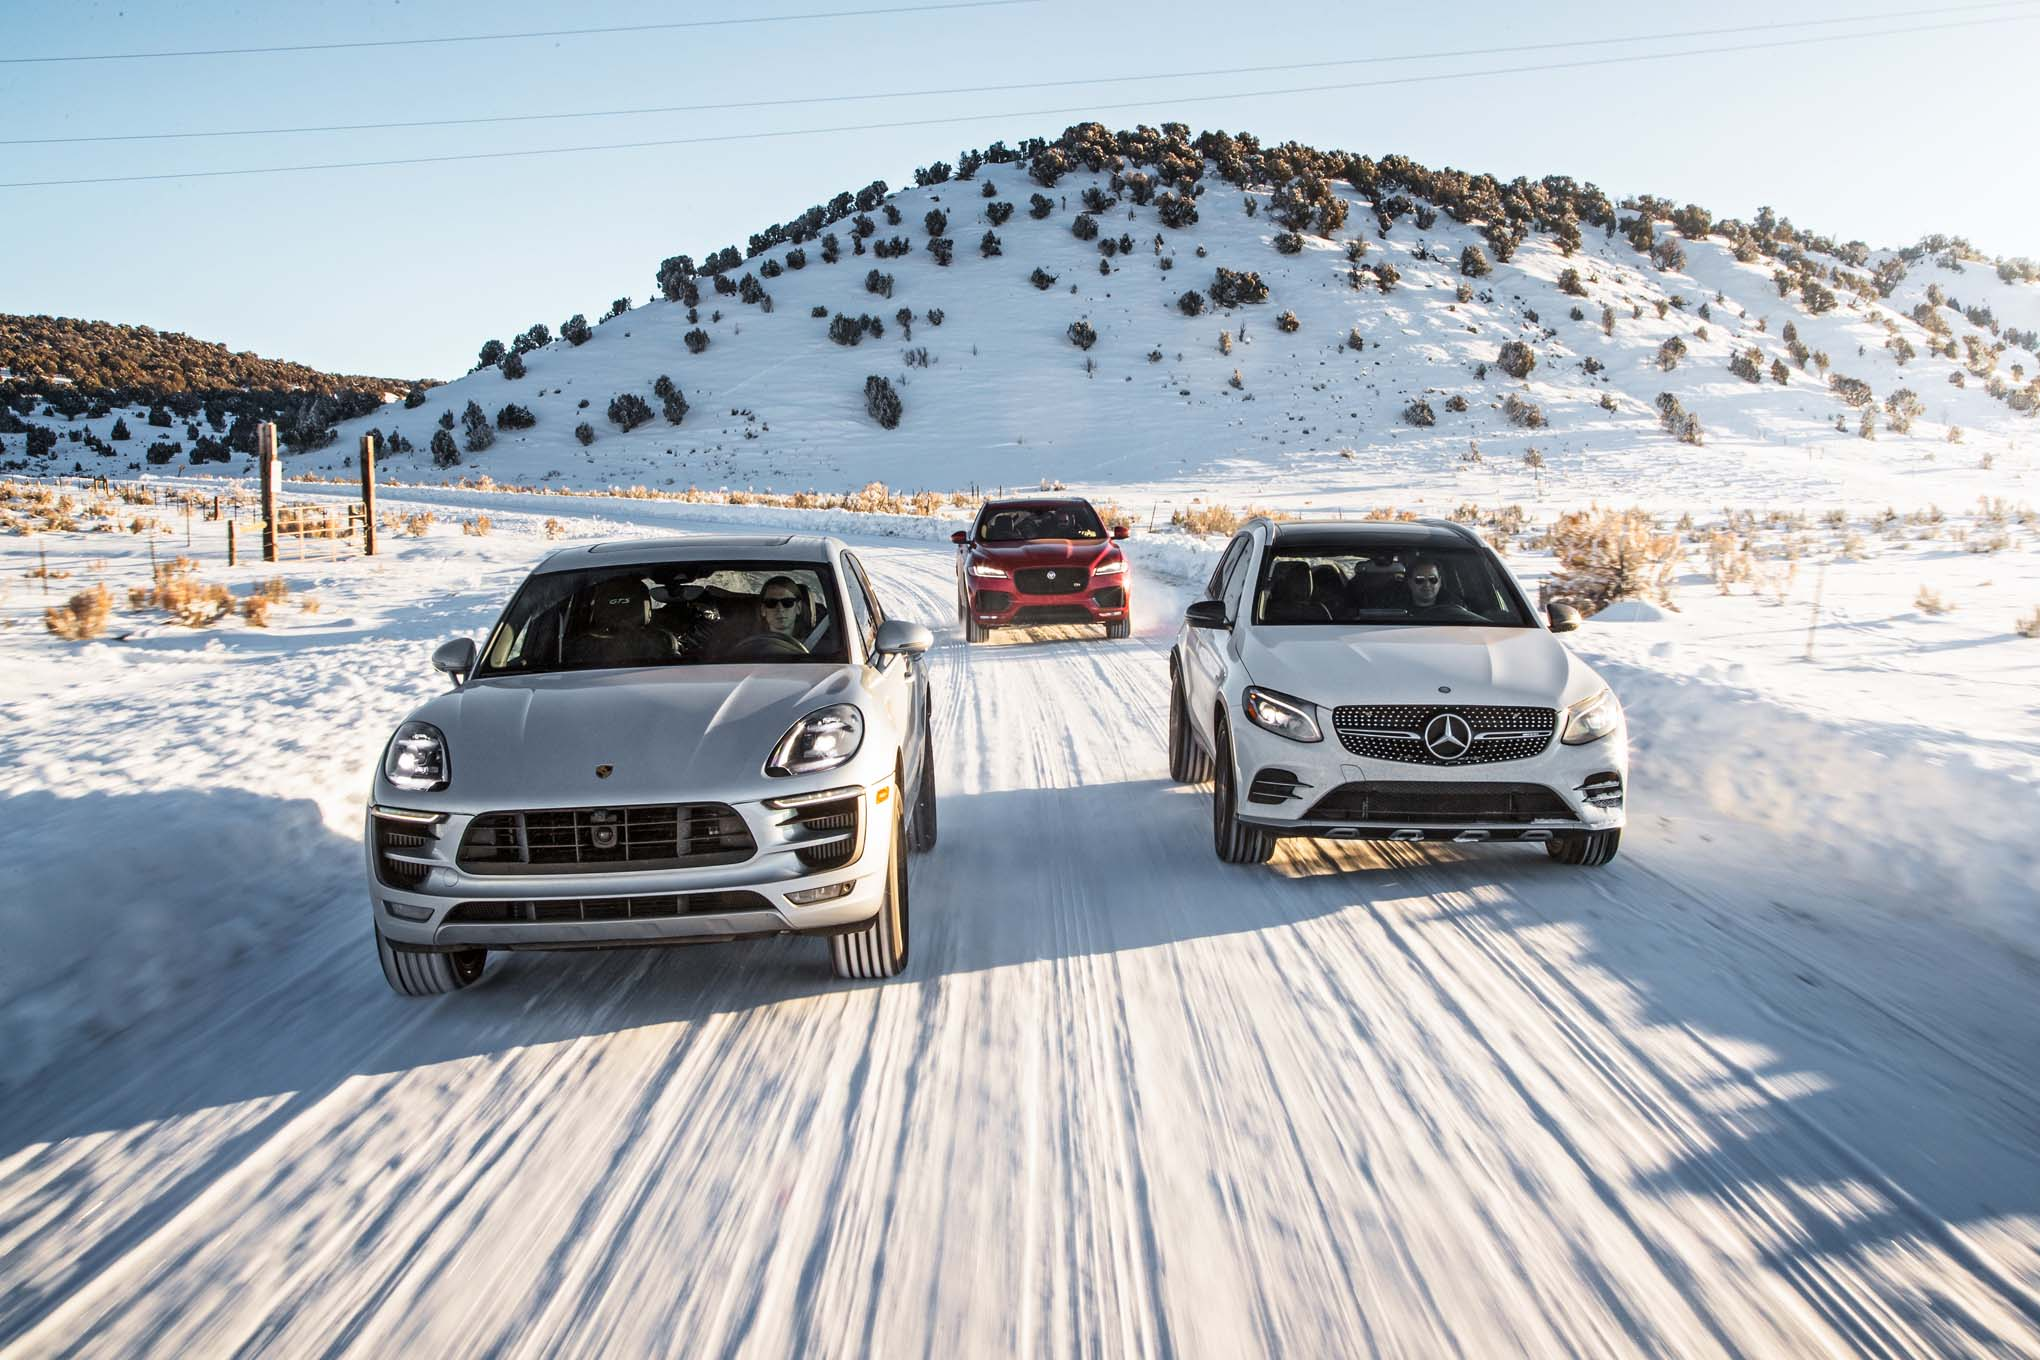 Jaguar F Pace S AWD Mercedes AMG GLC43 4Matic Porsche Macan GTS front end in motion